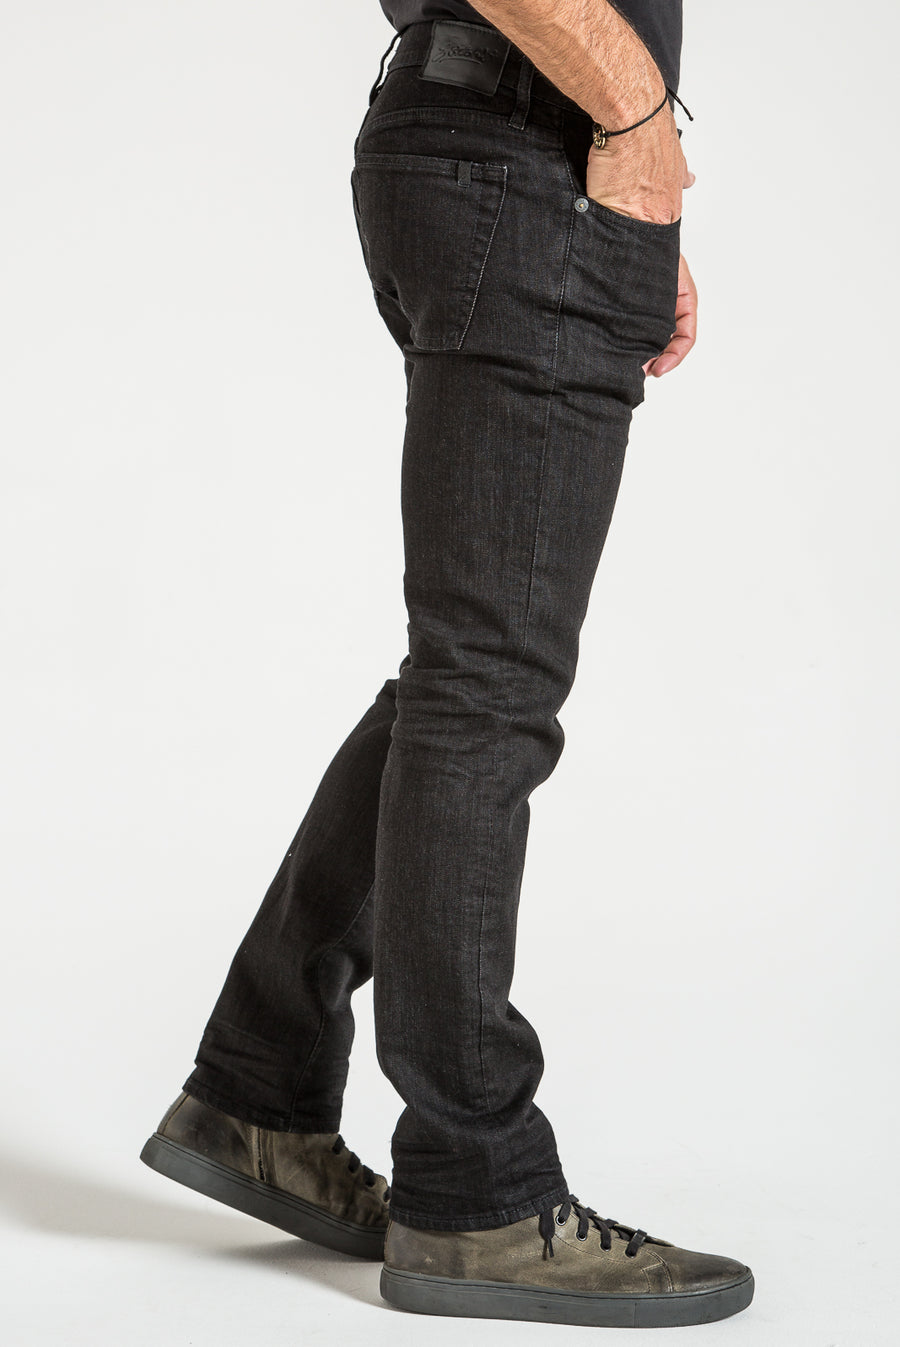 BARFLY SLIM IN BERMUDA DENIM